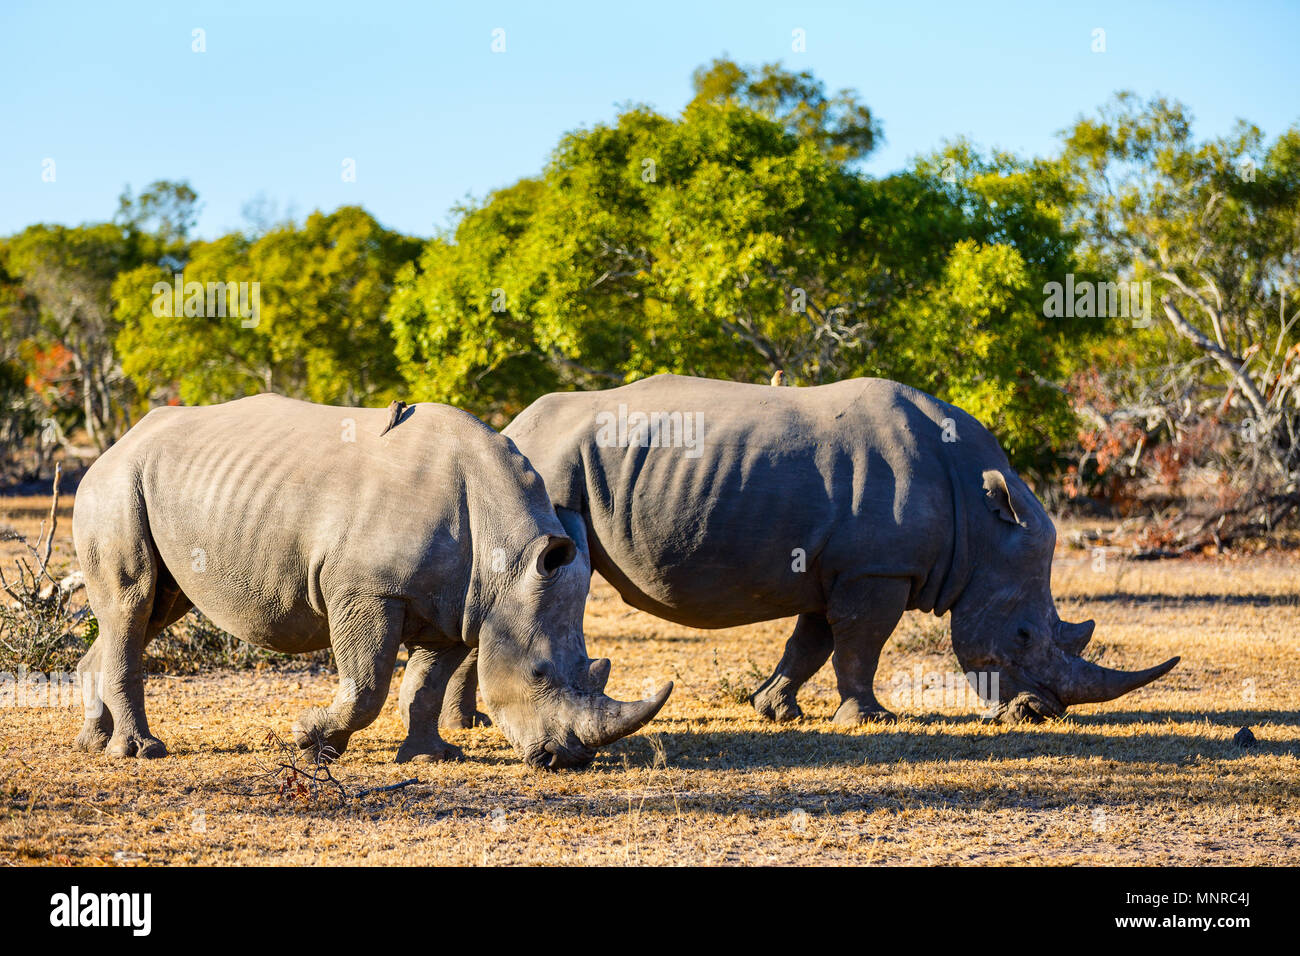 White rhinos grazing in an open field in South Africa - Stock Image